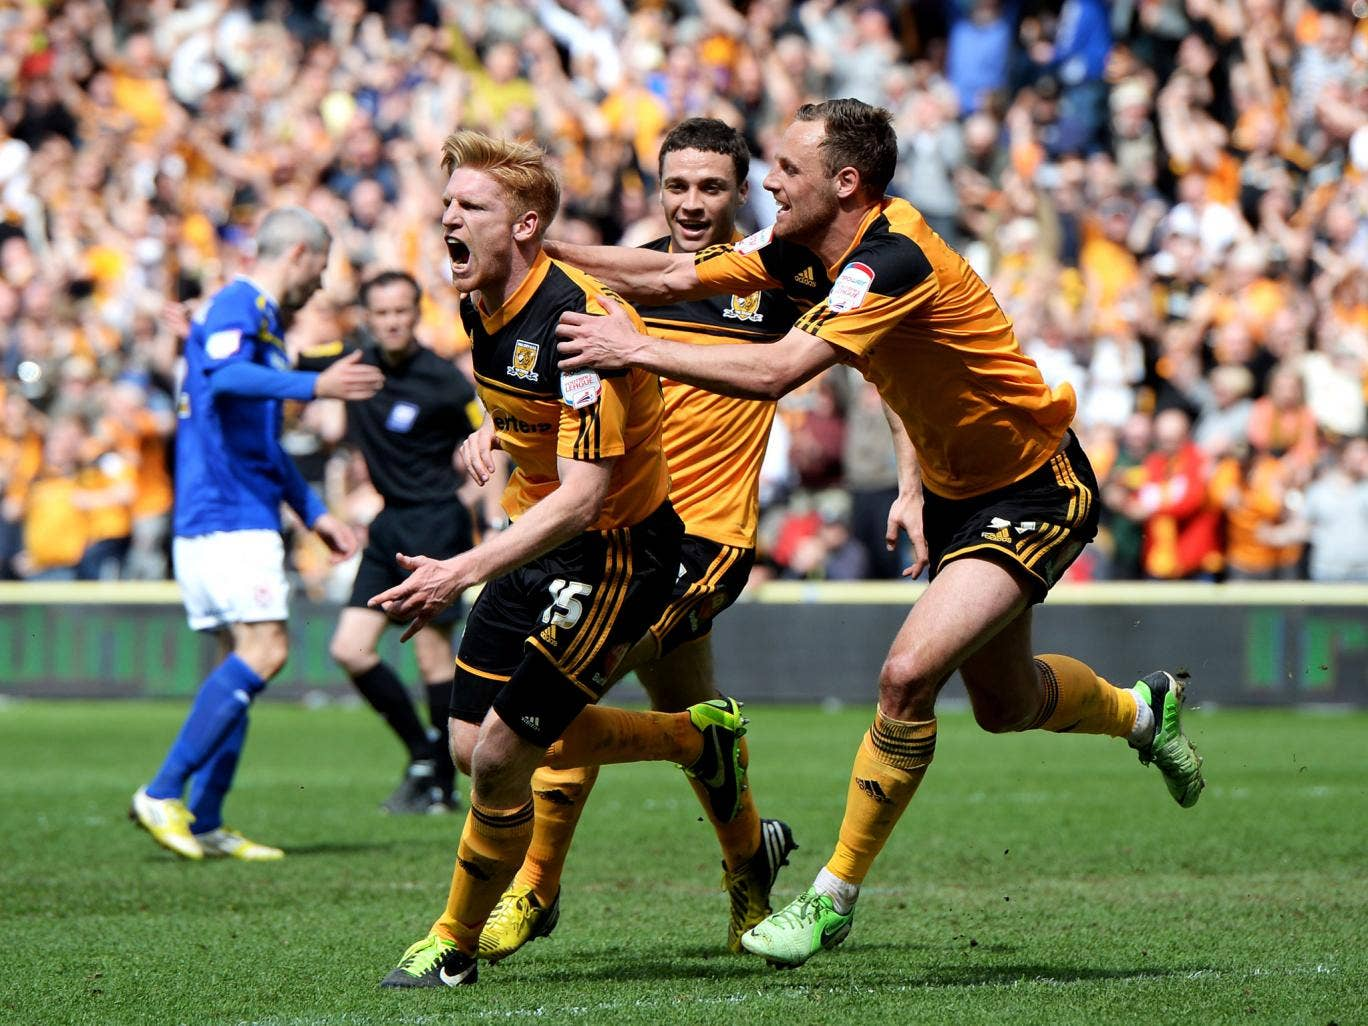 Hull eased through to the Premier League despite a dramatic end